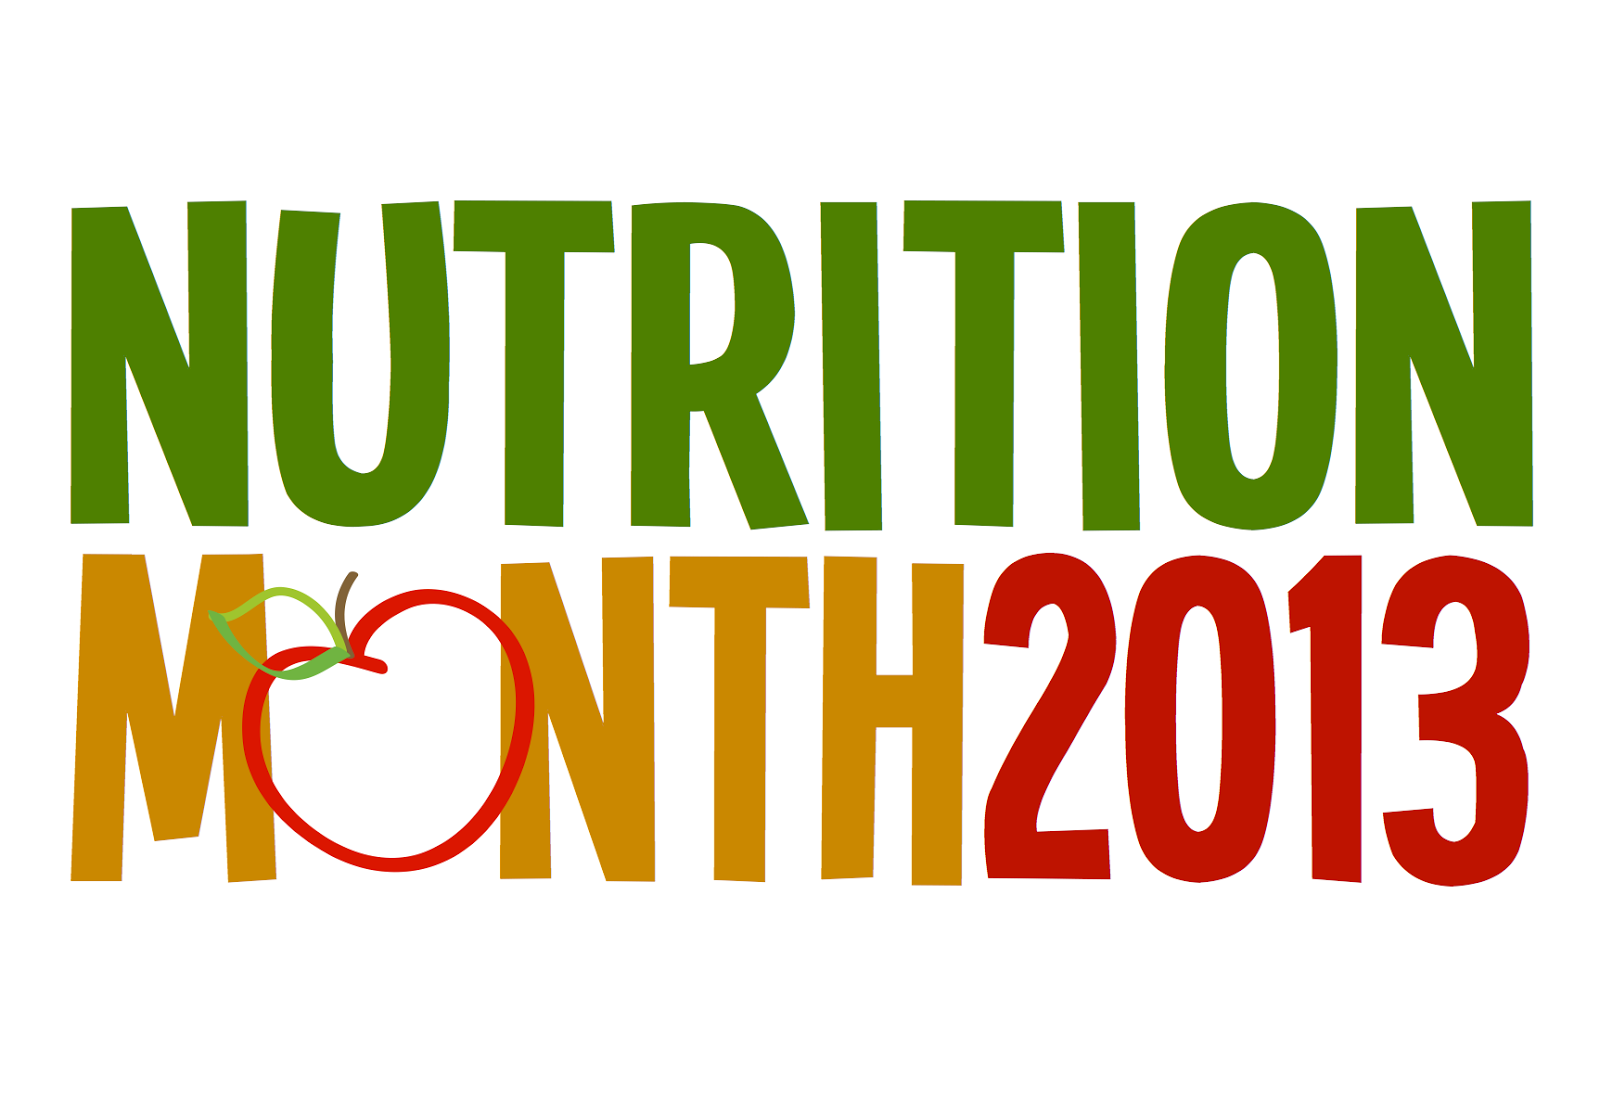 essays on nutrition month